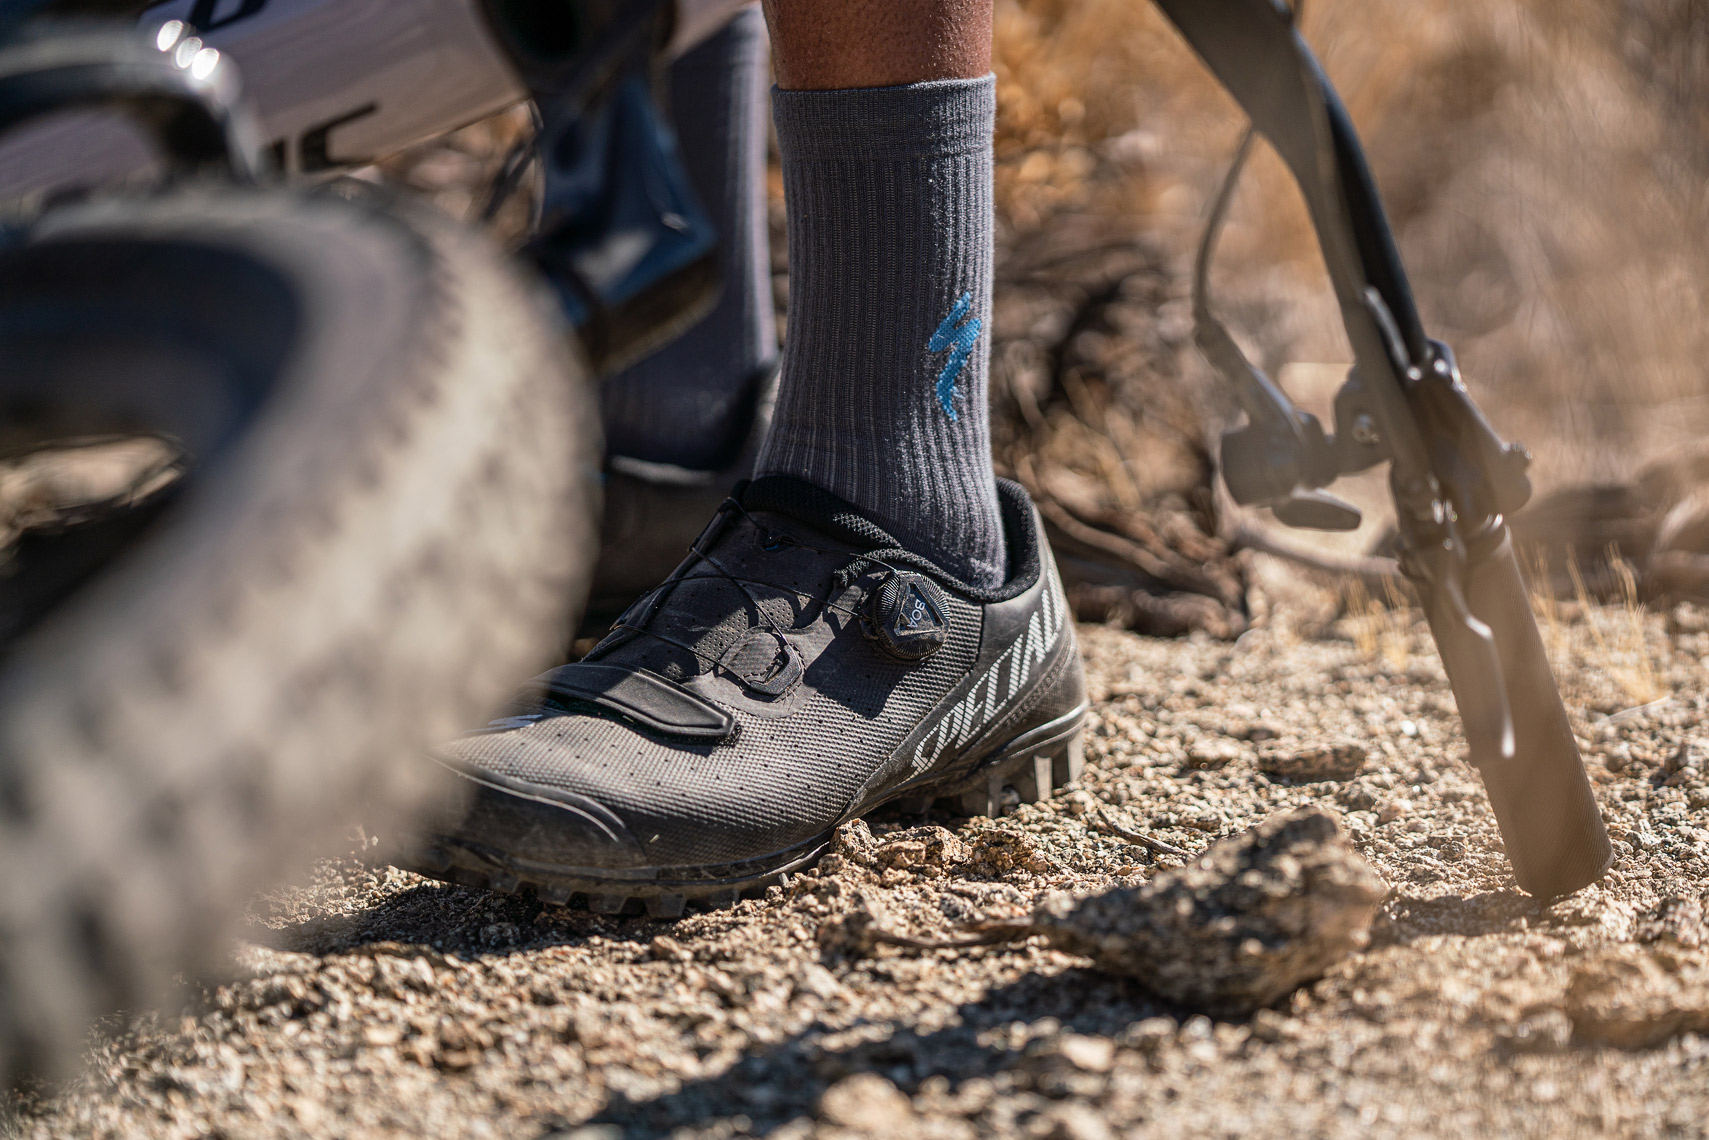 Specialized_S21_MTB_Clothing_Palm_Springs_VanWeelden-287